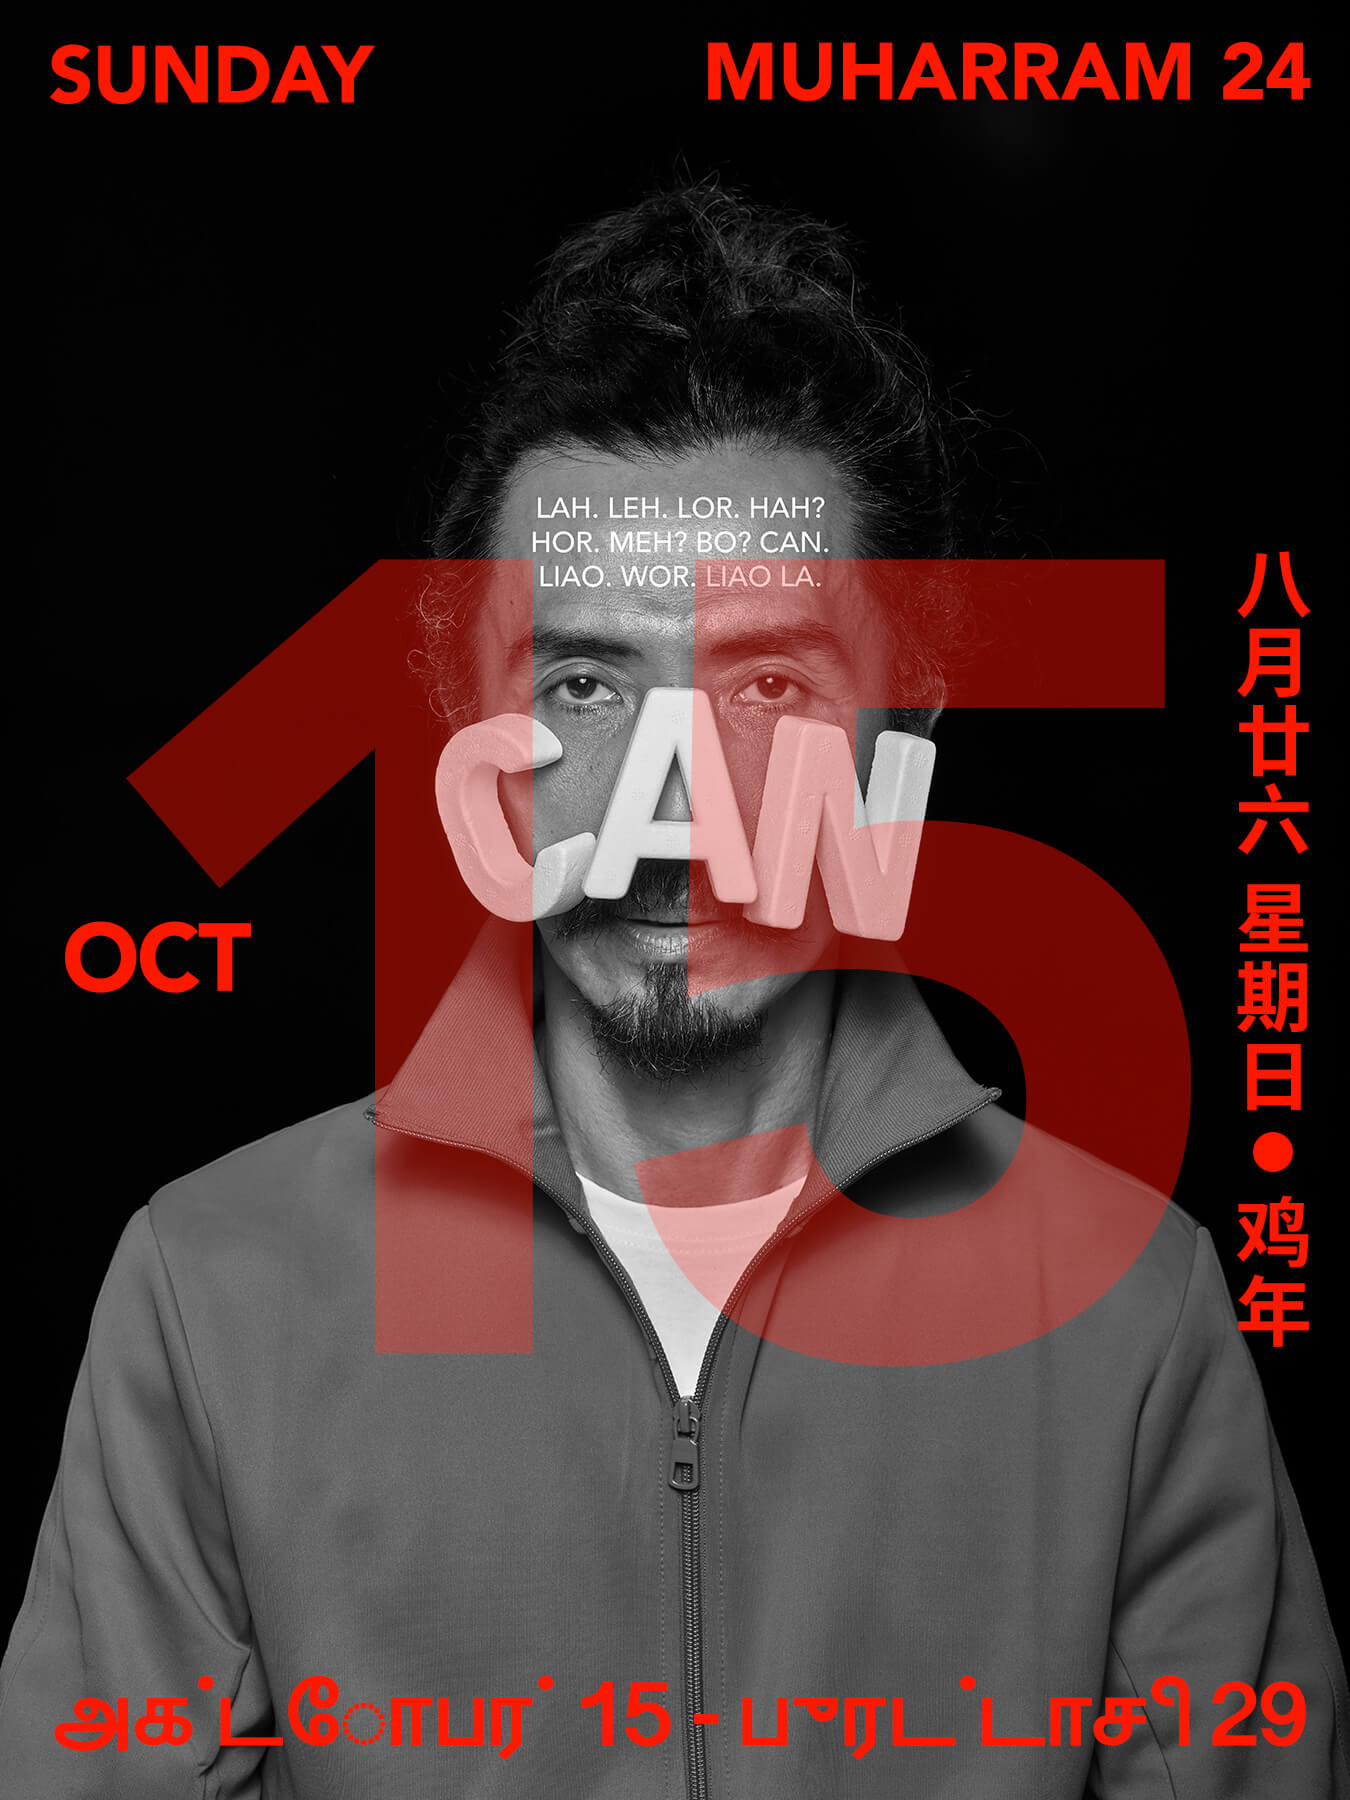 15 Oct 2017 CAN!: Derong is photographed the words CAN on his face